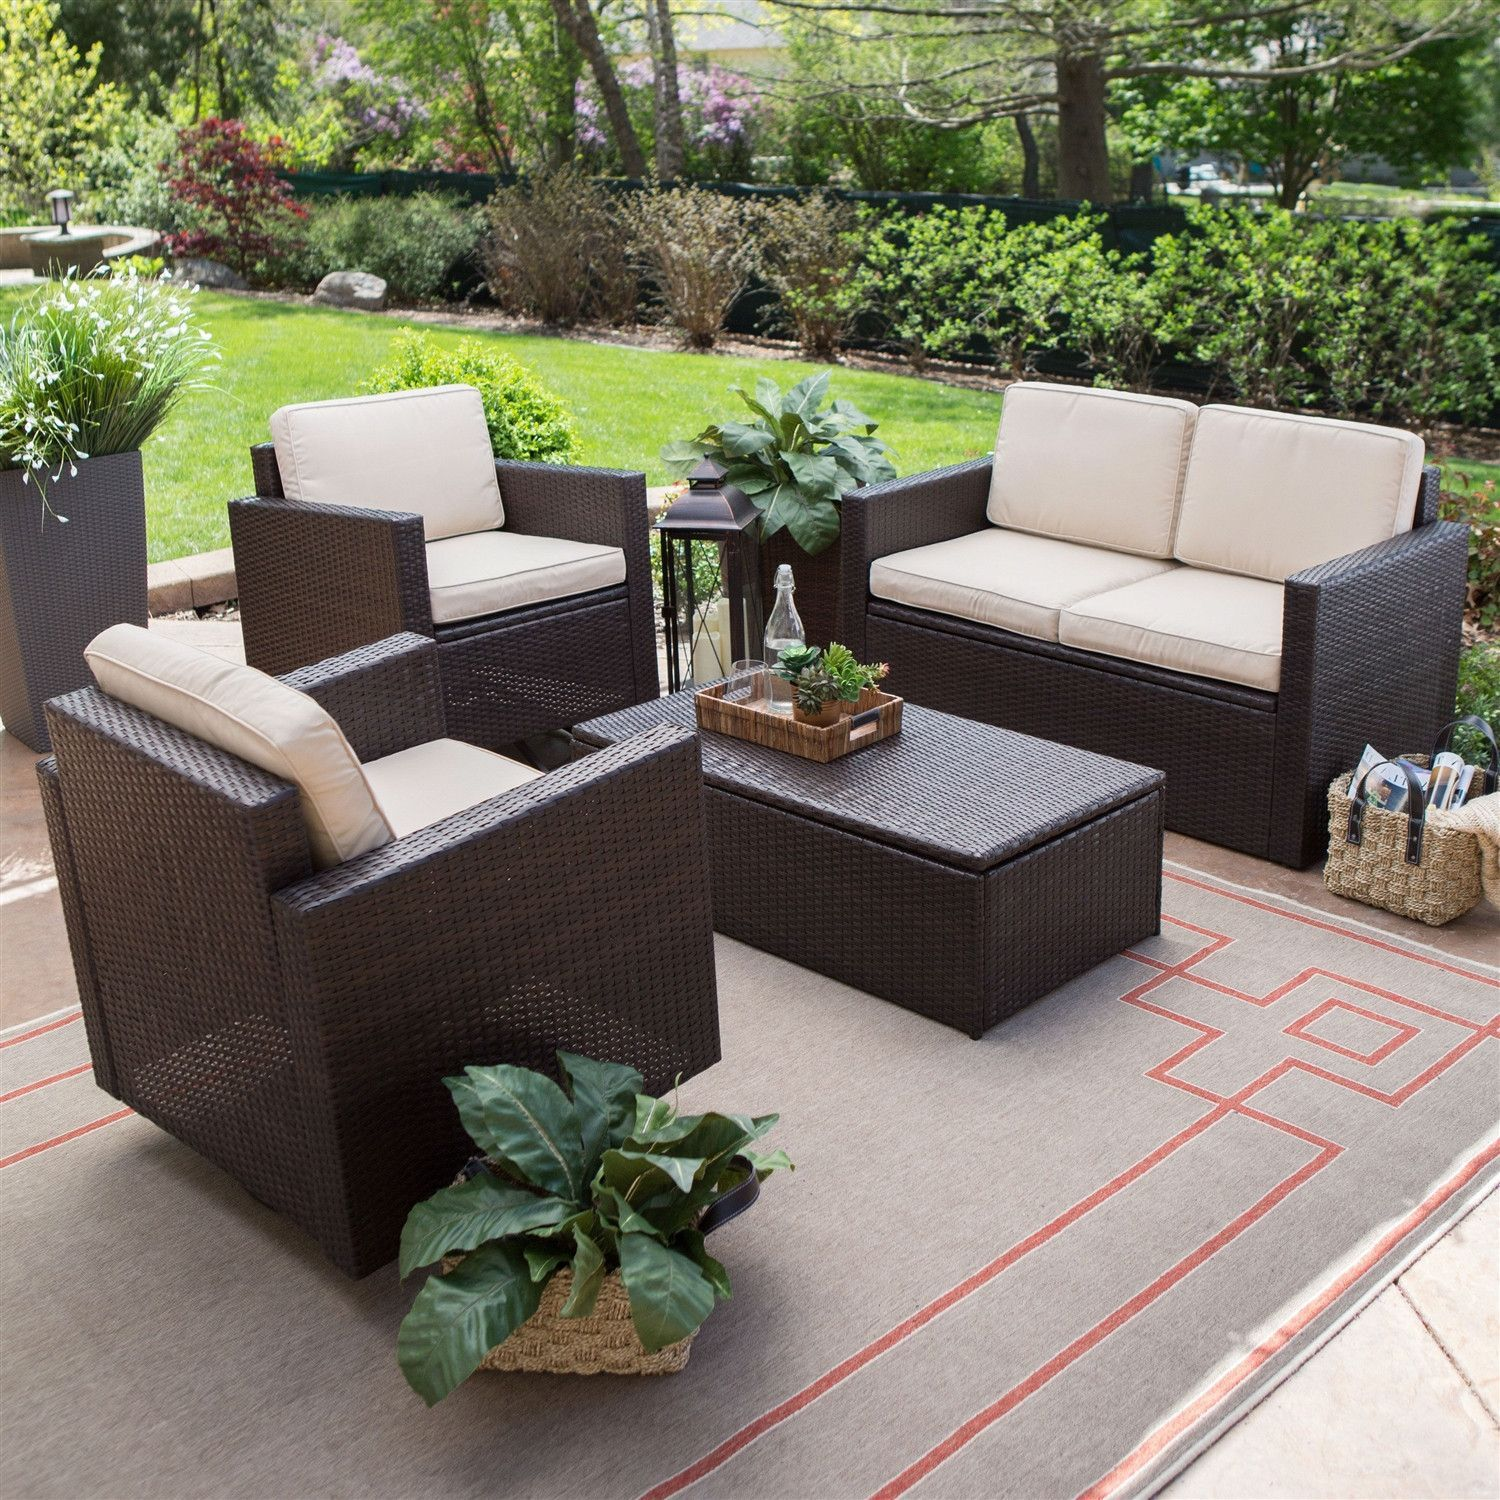 outdoor wicker resin 4 piece patio furniture dinning set with 2 rh pinterest com discount resin wicker patio furniture wicker resin patio furniture reviews